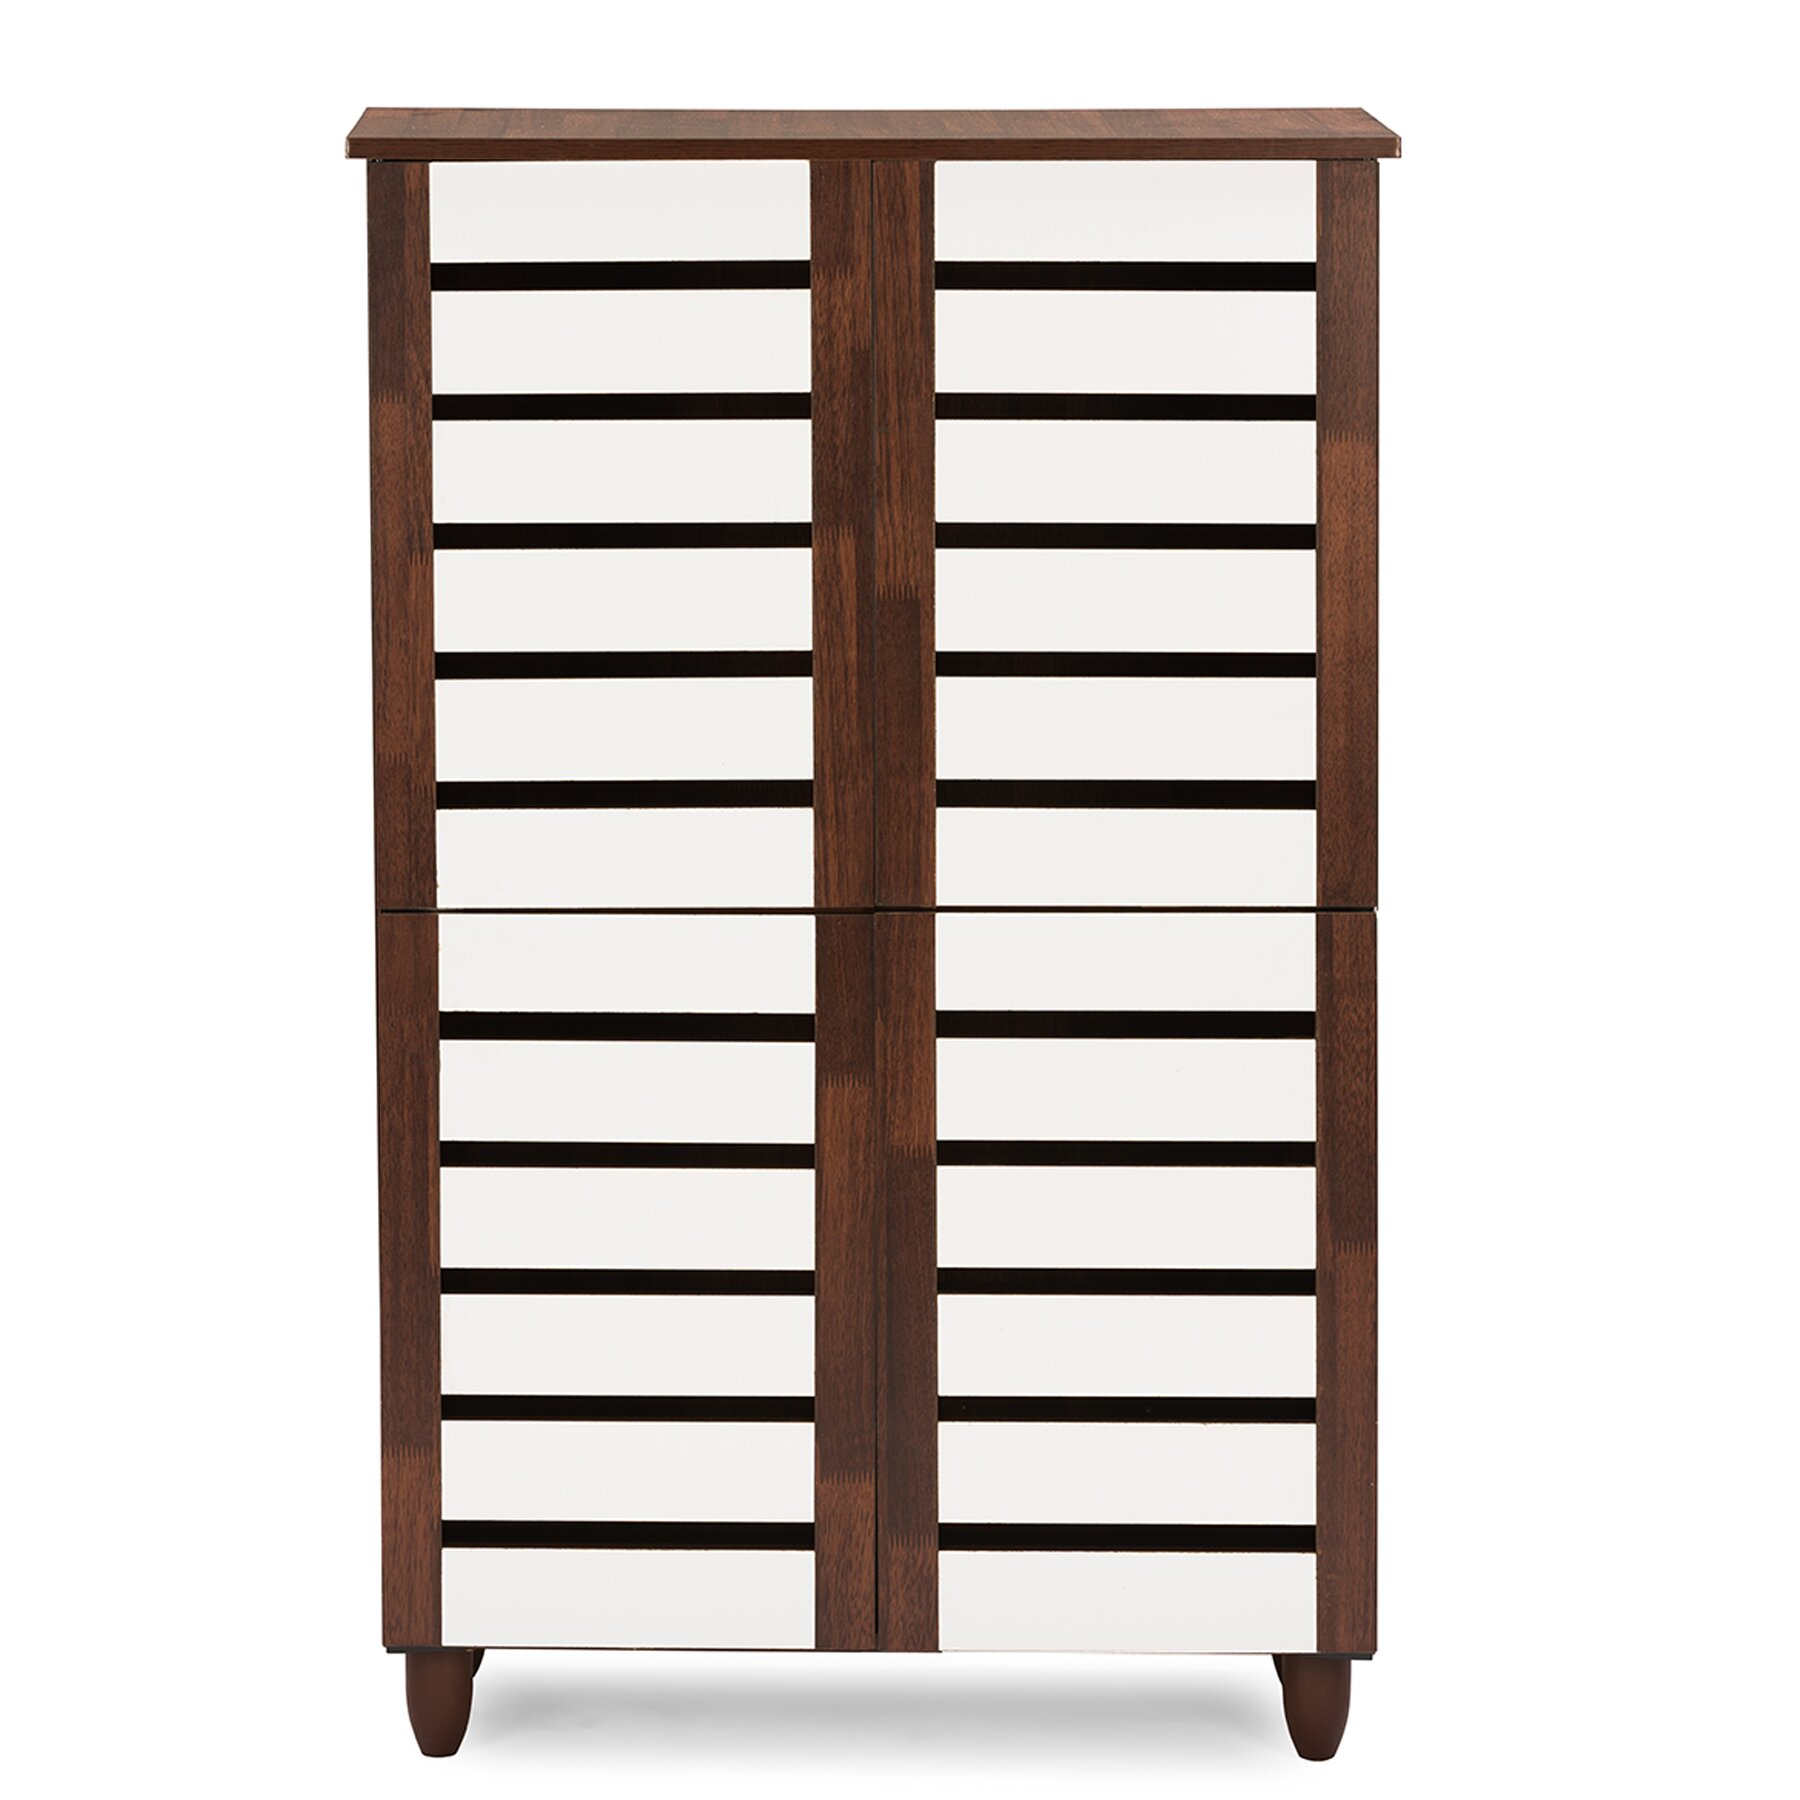 18 Storage Cabinet Wholesale Interiors Baxton Studio Gisela 18 Pair Shoe Storage